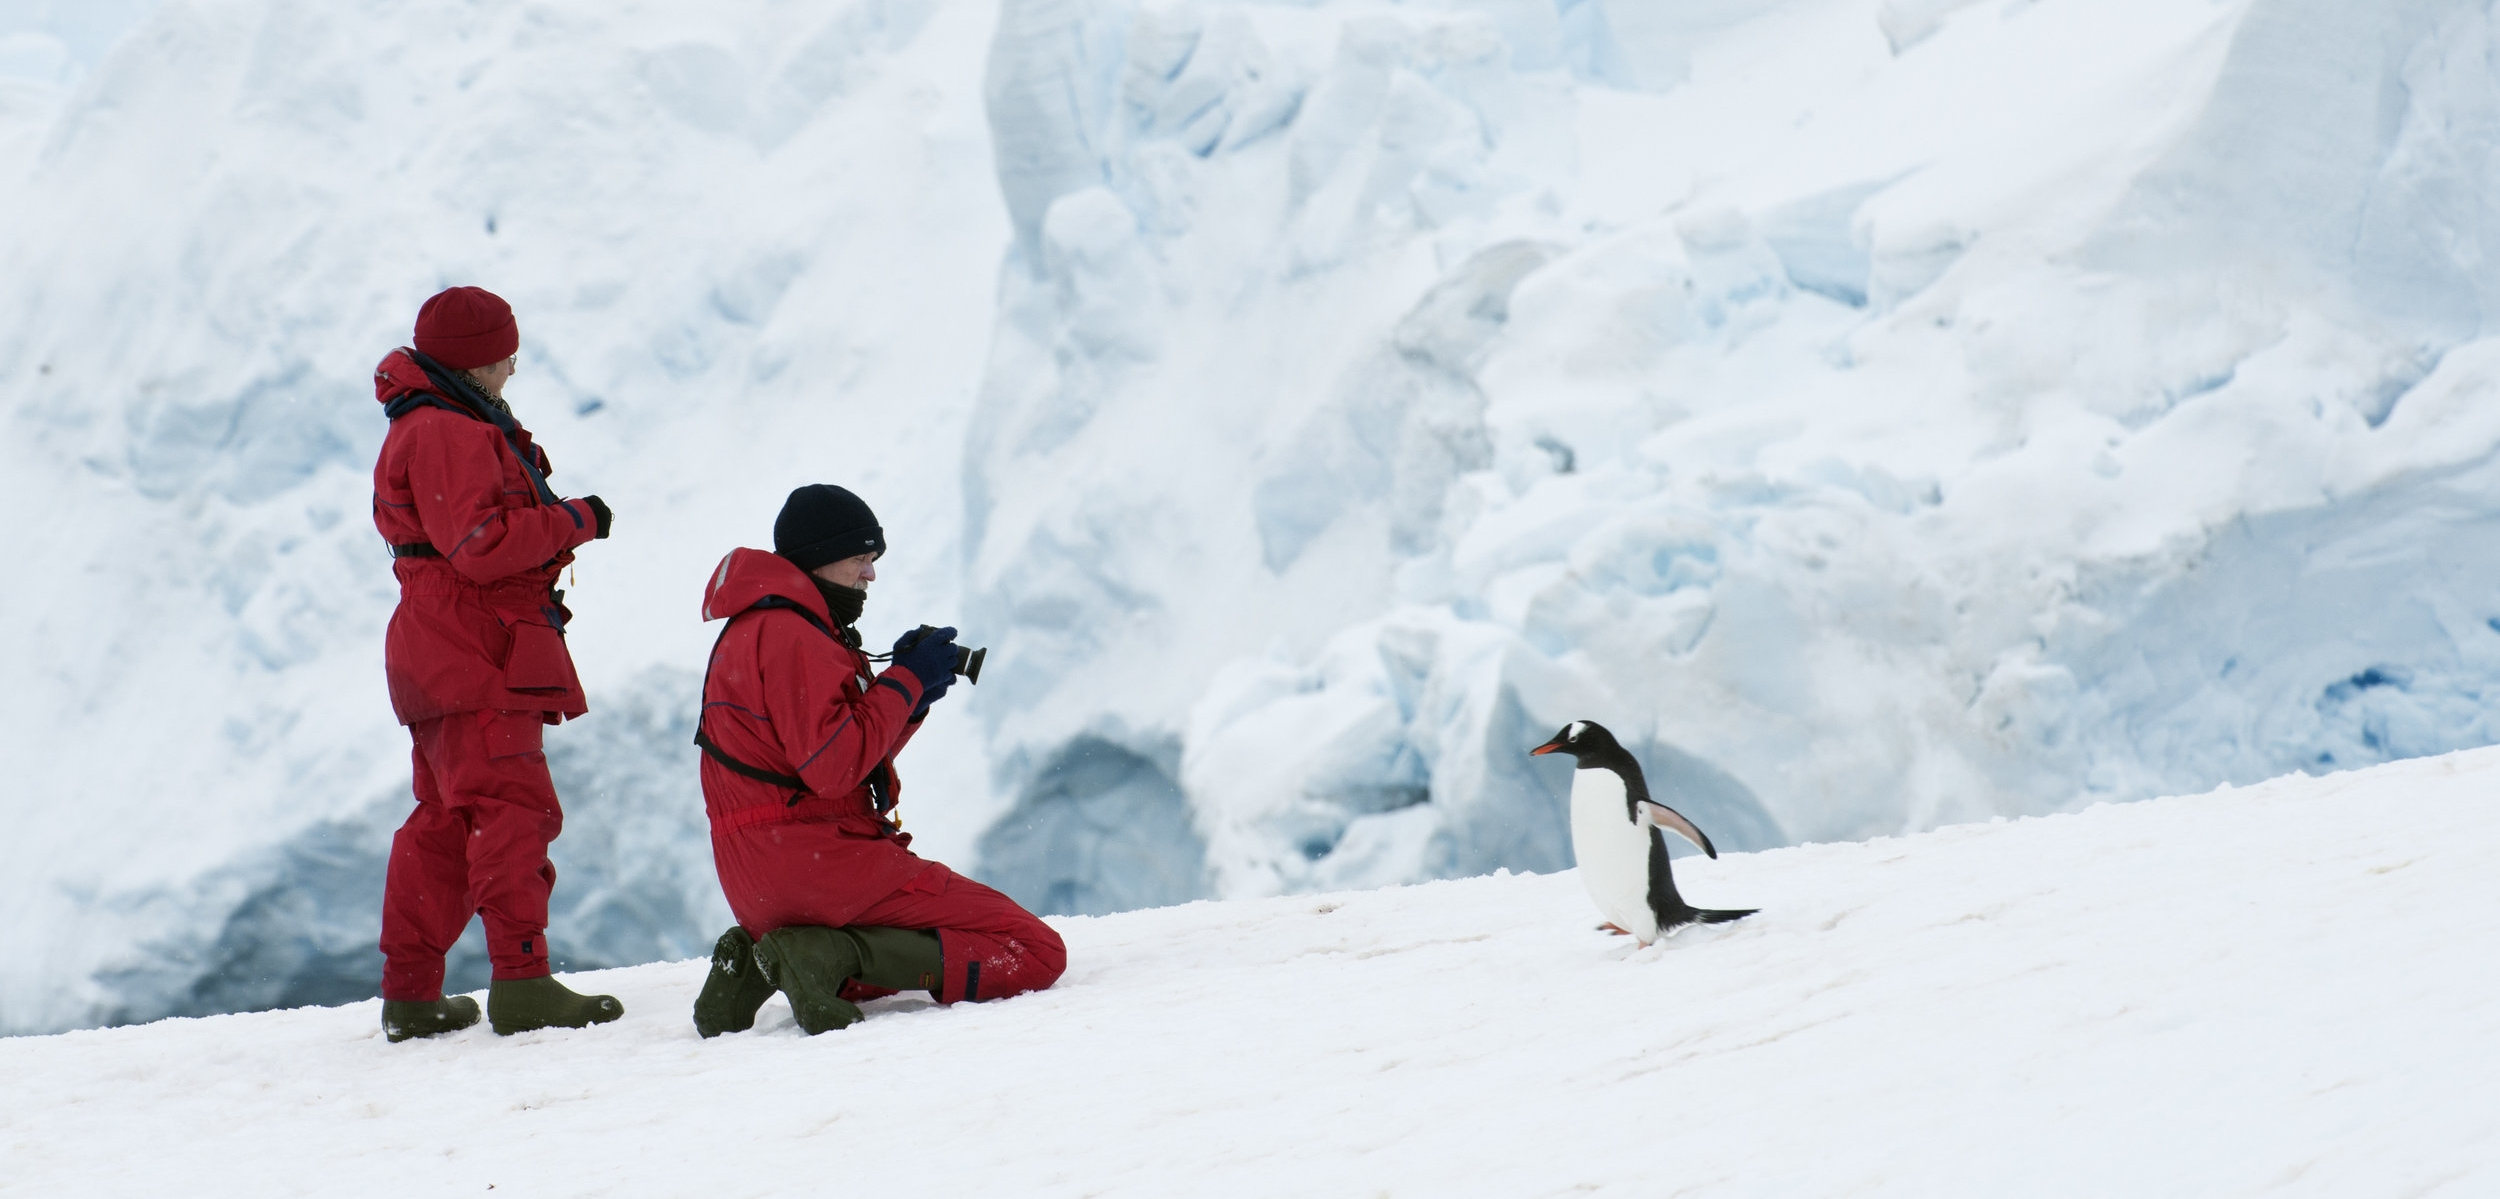 Photographing a curious Gentoo penguin